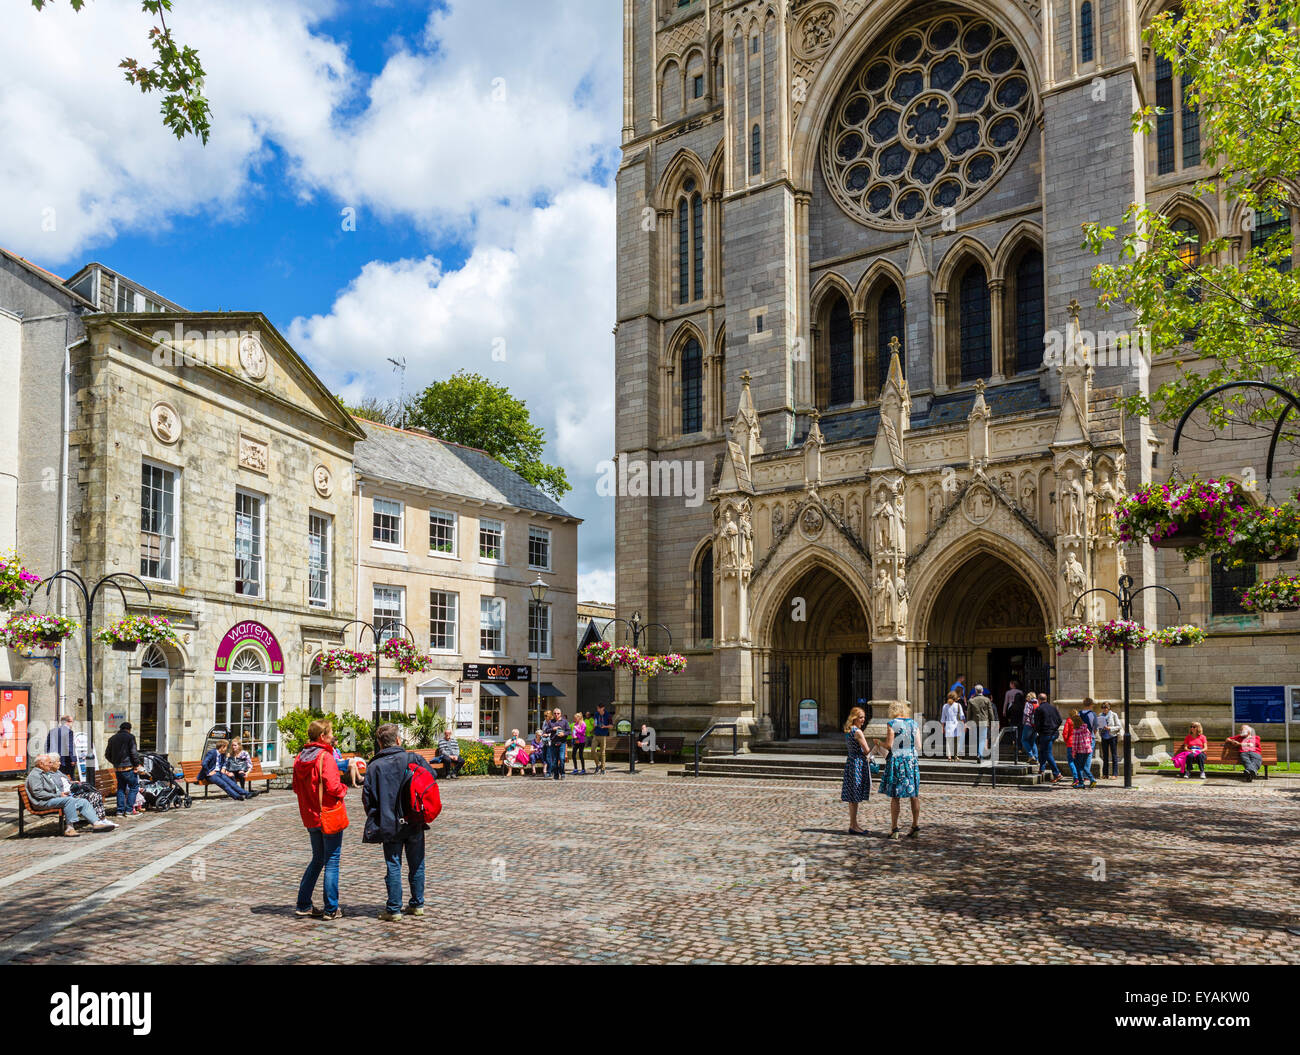 High Cross in front of the Cathedral, Truro, Cornwall, England, UK - Stock Image